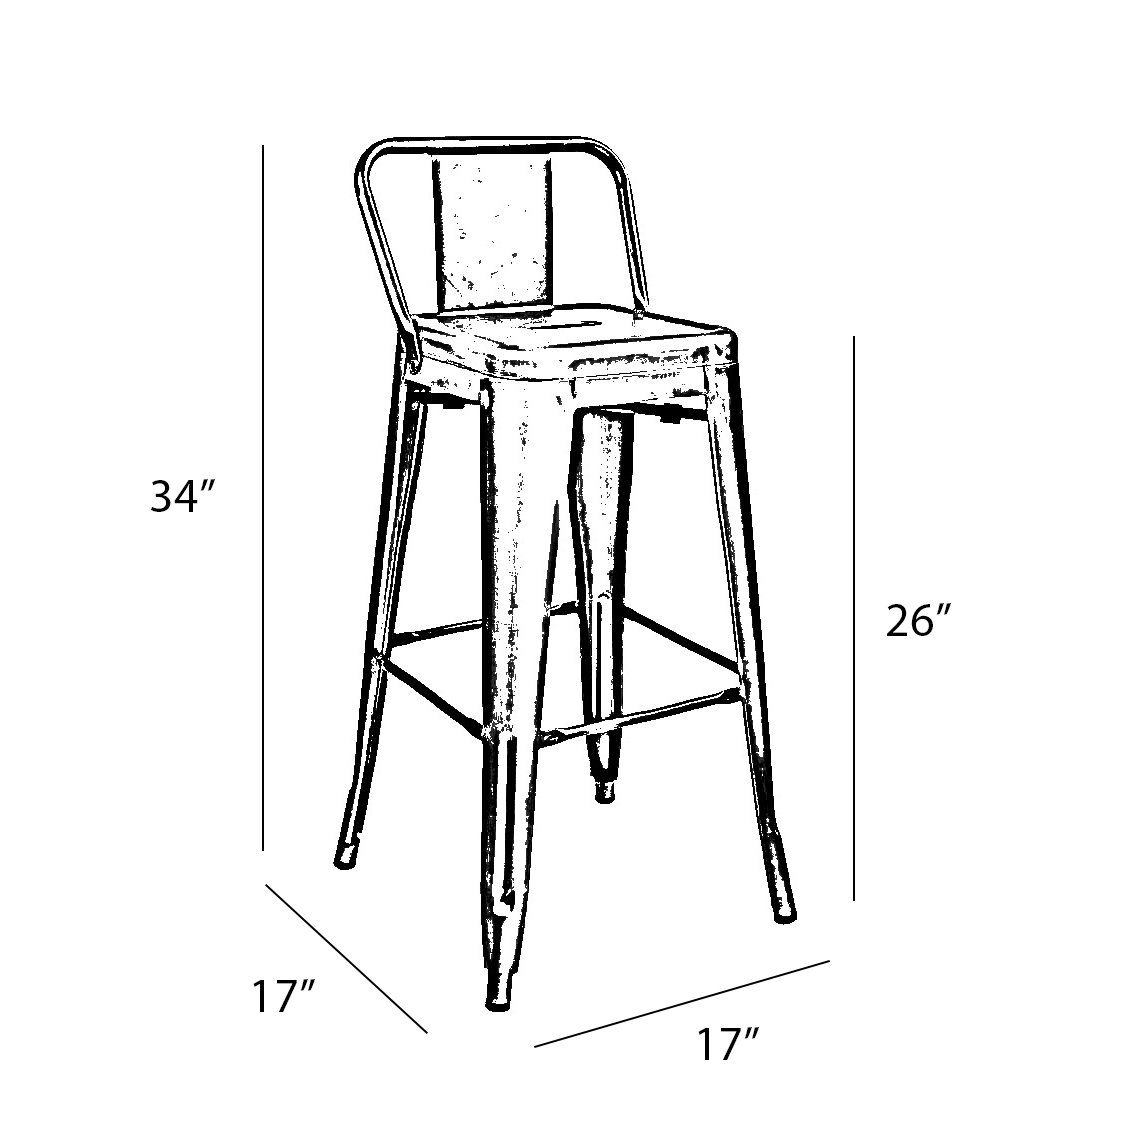 1144x1144 Williston Forge Despres Low Back Steel Counter 26 Bar Stool